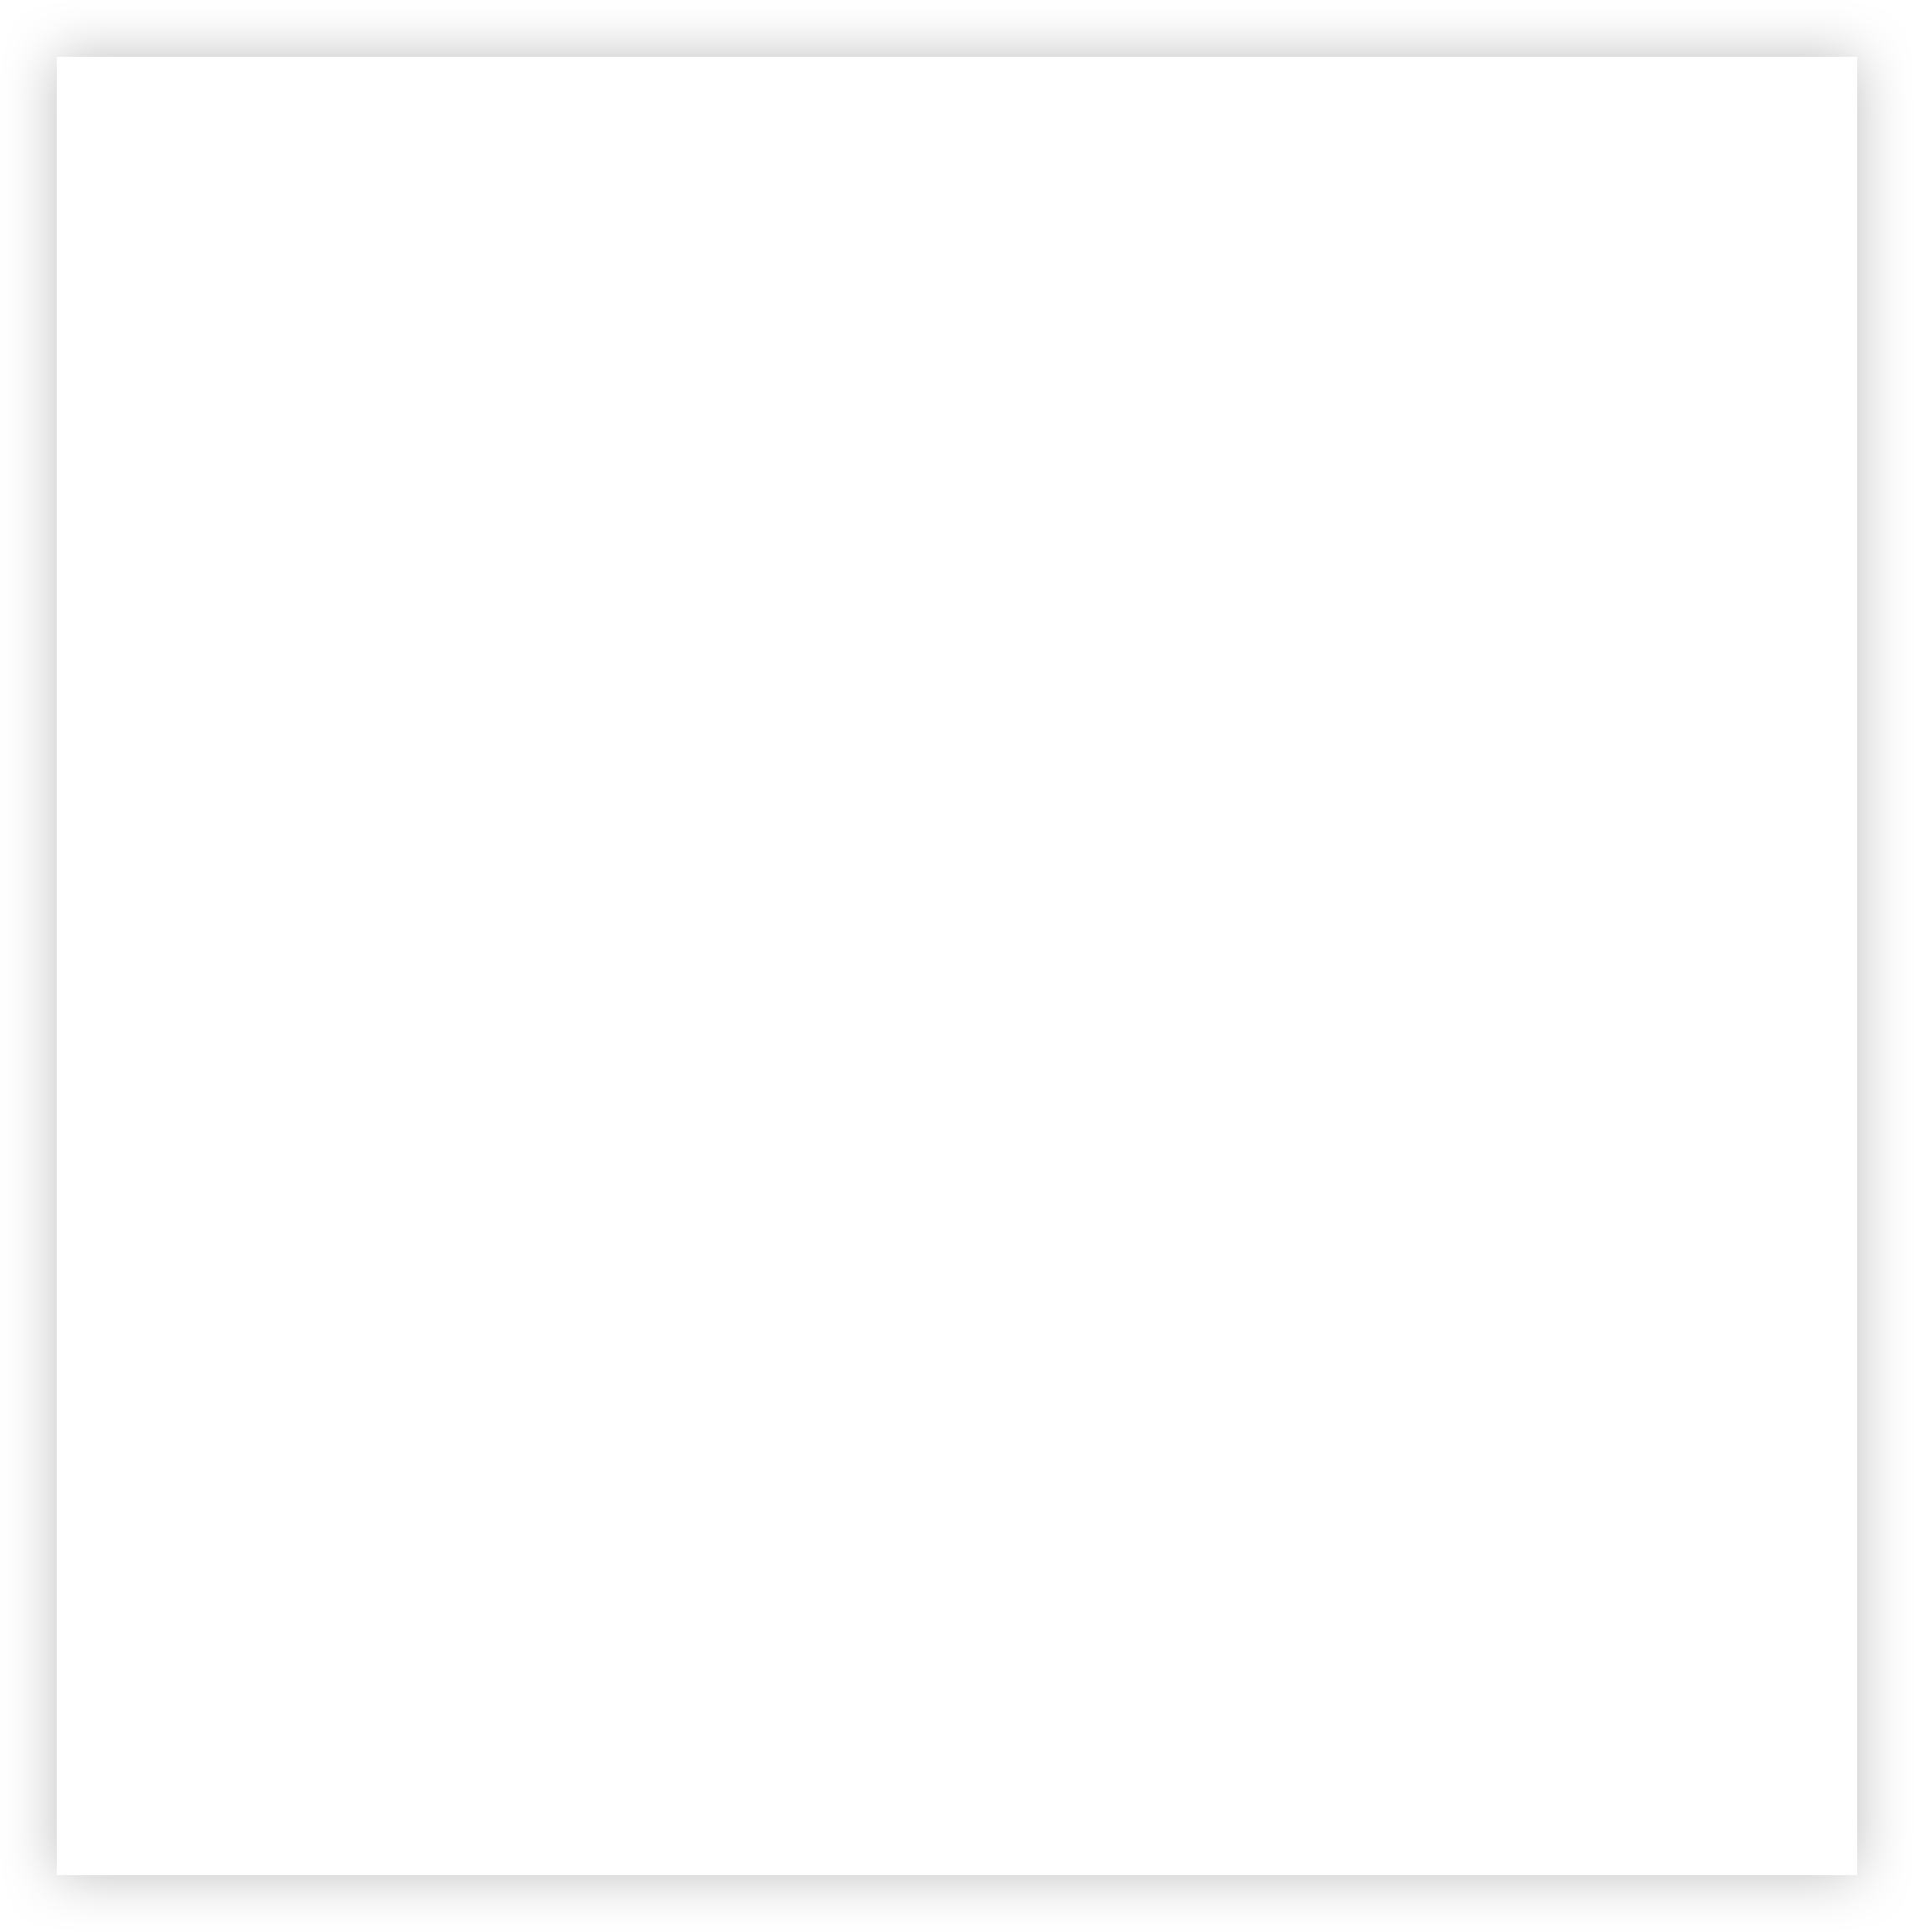 Double Line Border PNG - 152011